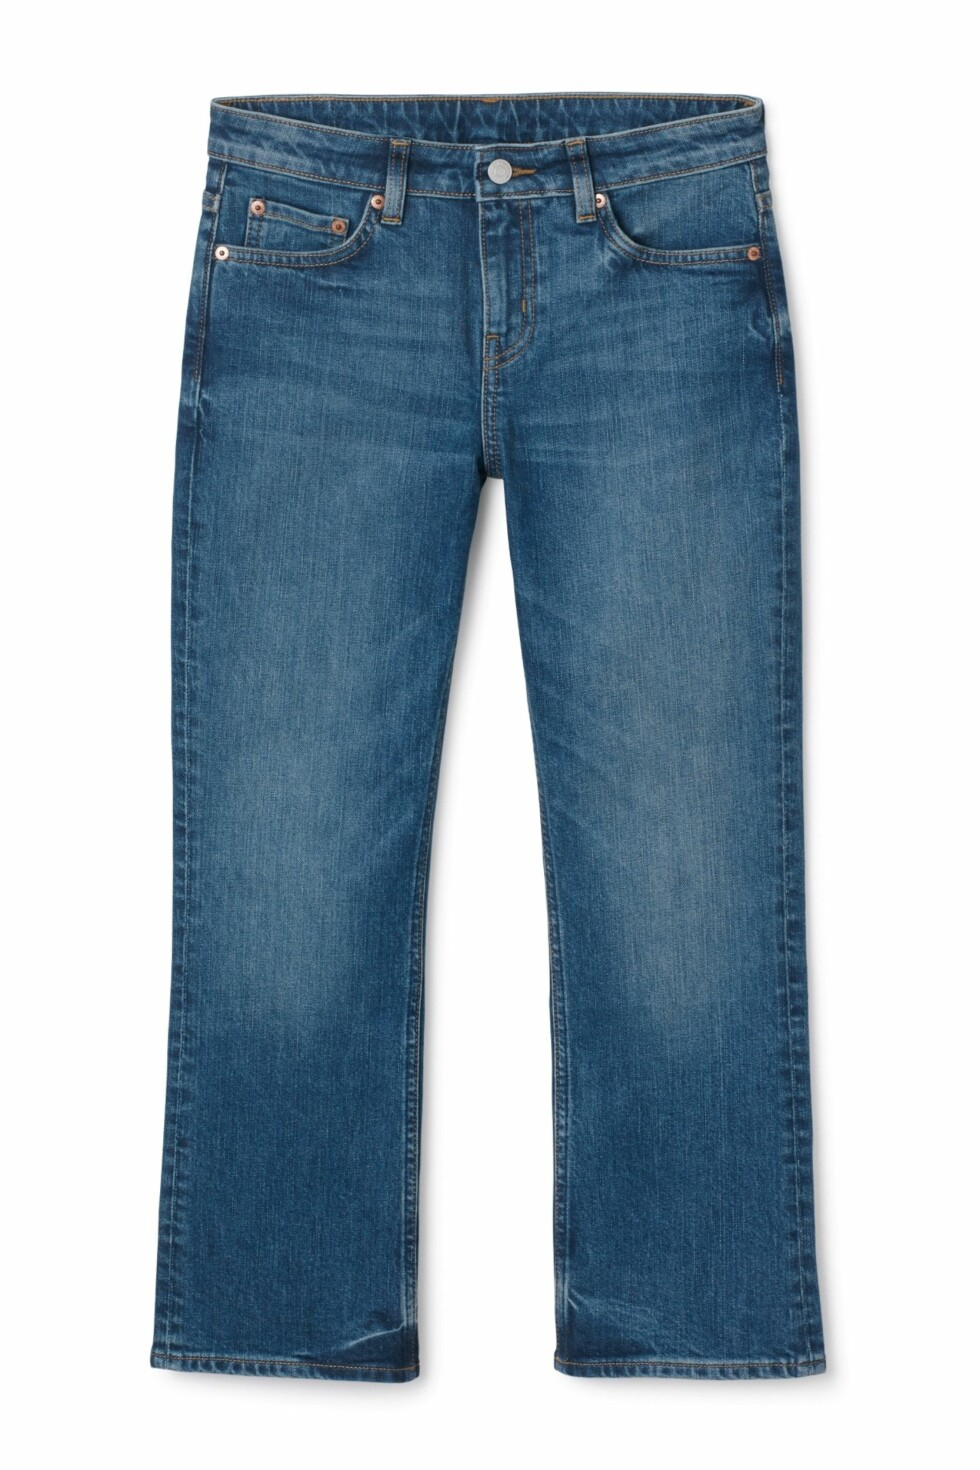 <strong>Jeans fra Weekday | kr 500 | http:</strong>//shop.weekday.com/se/Womens_shop/Jeans/Cut_Trade_Blue/542440-6254798.1?image=1328240#c-47958